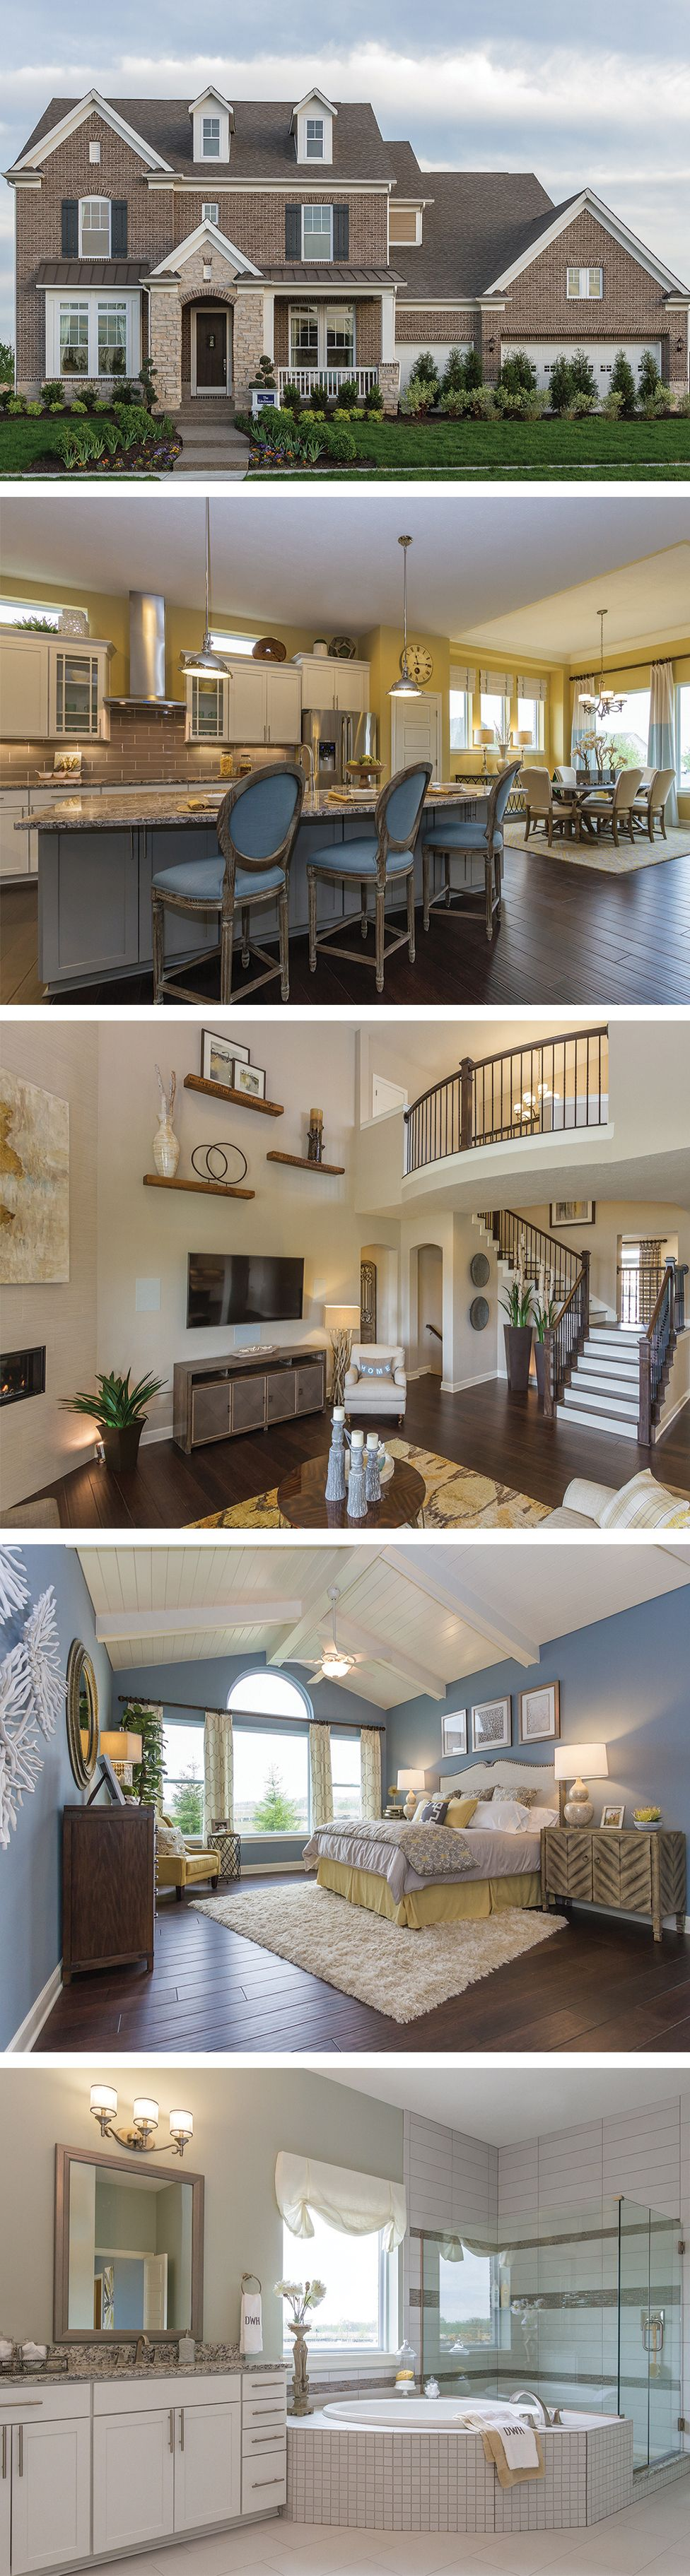 New homes in westfield the lindmoor is our model home master also best barbie dream house images future rh pinterest